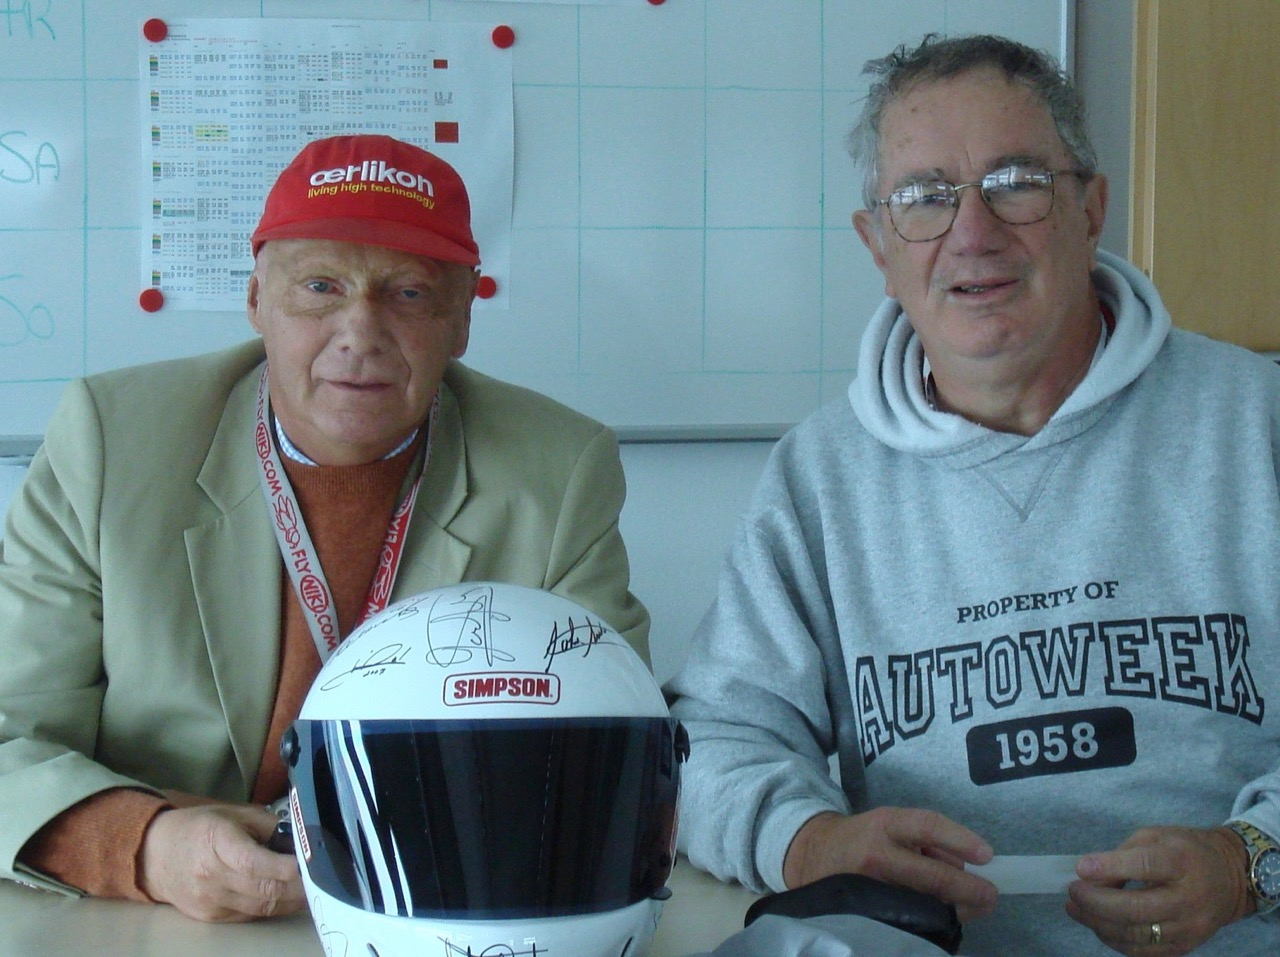 Niki Lauda and Pearce and the helmet | Pearce archive photos